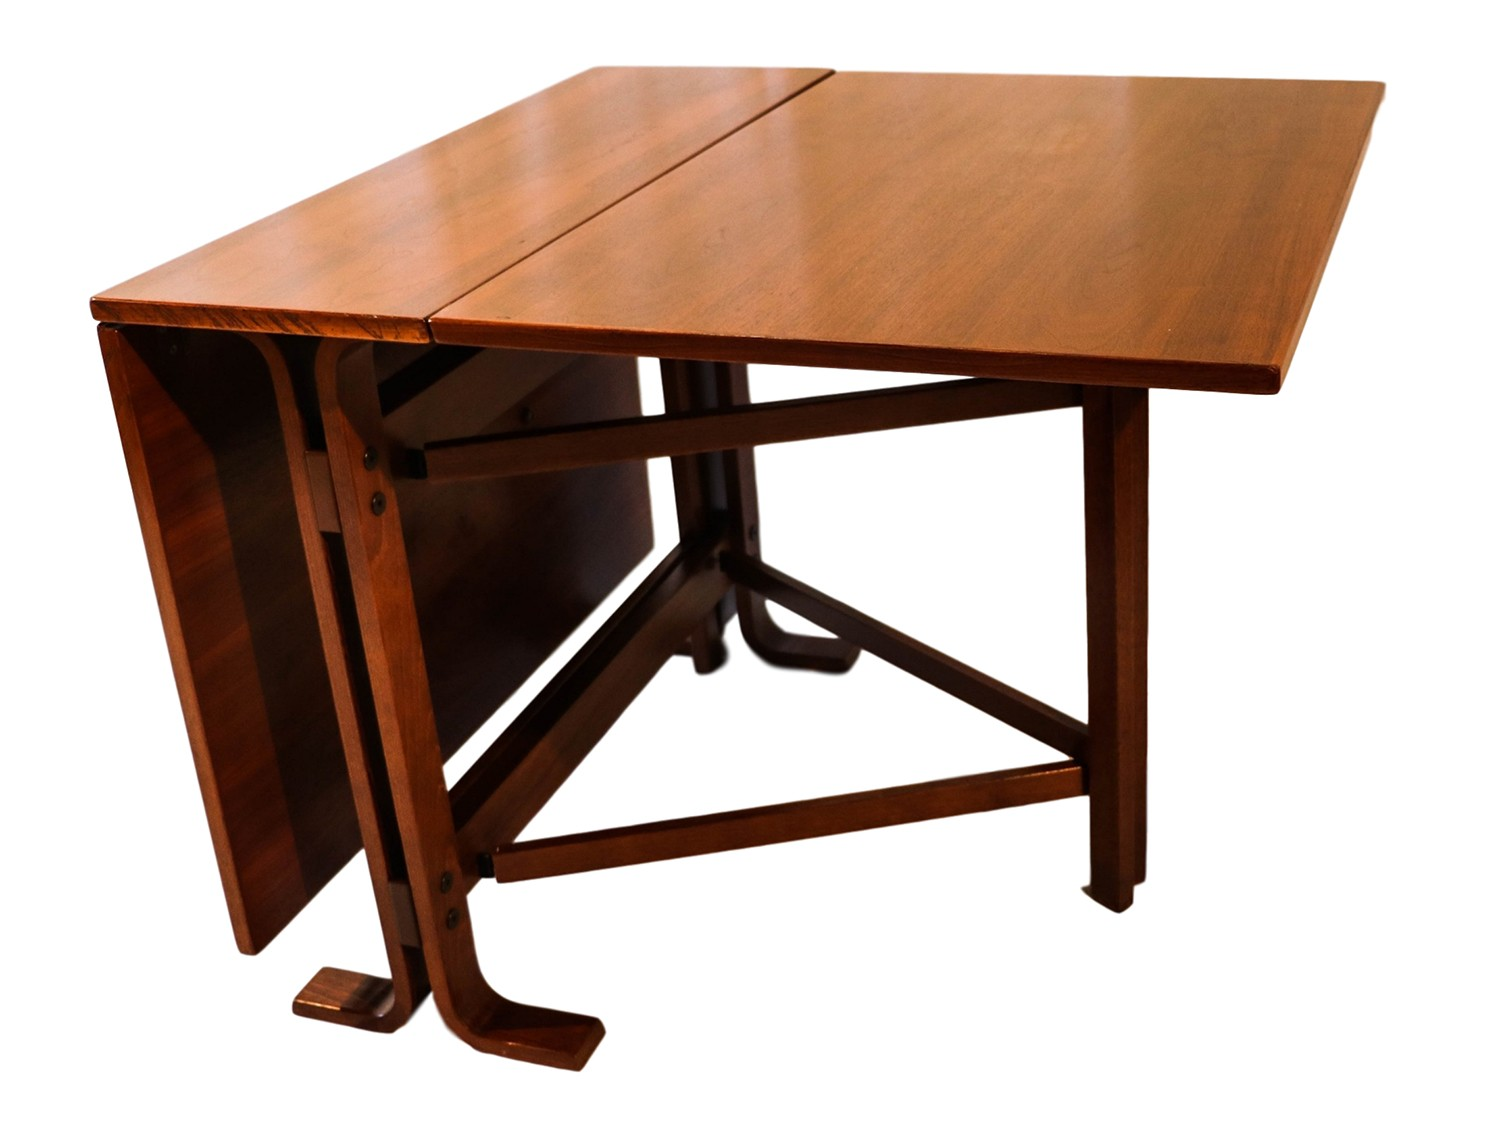 Danish drop leaf teak dining table bruno mathsson style for Breakfast table